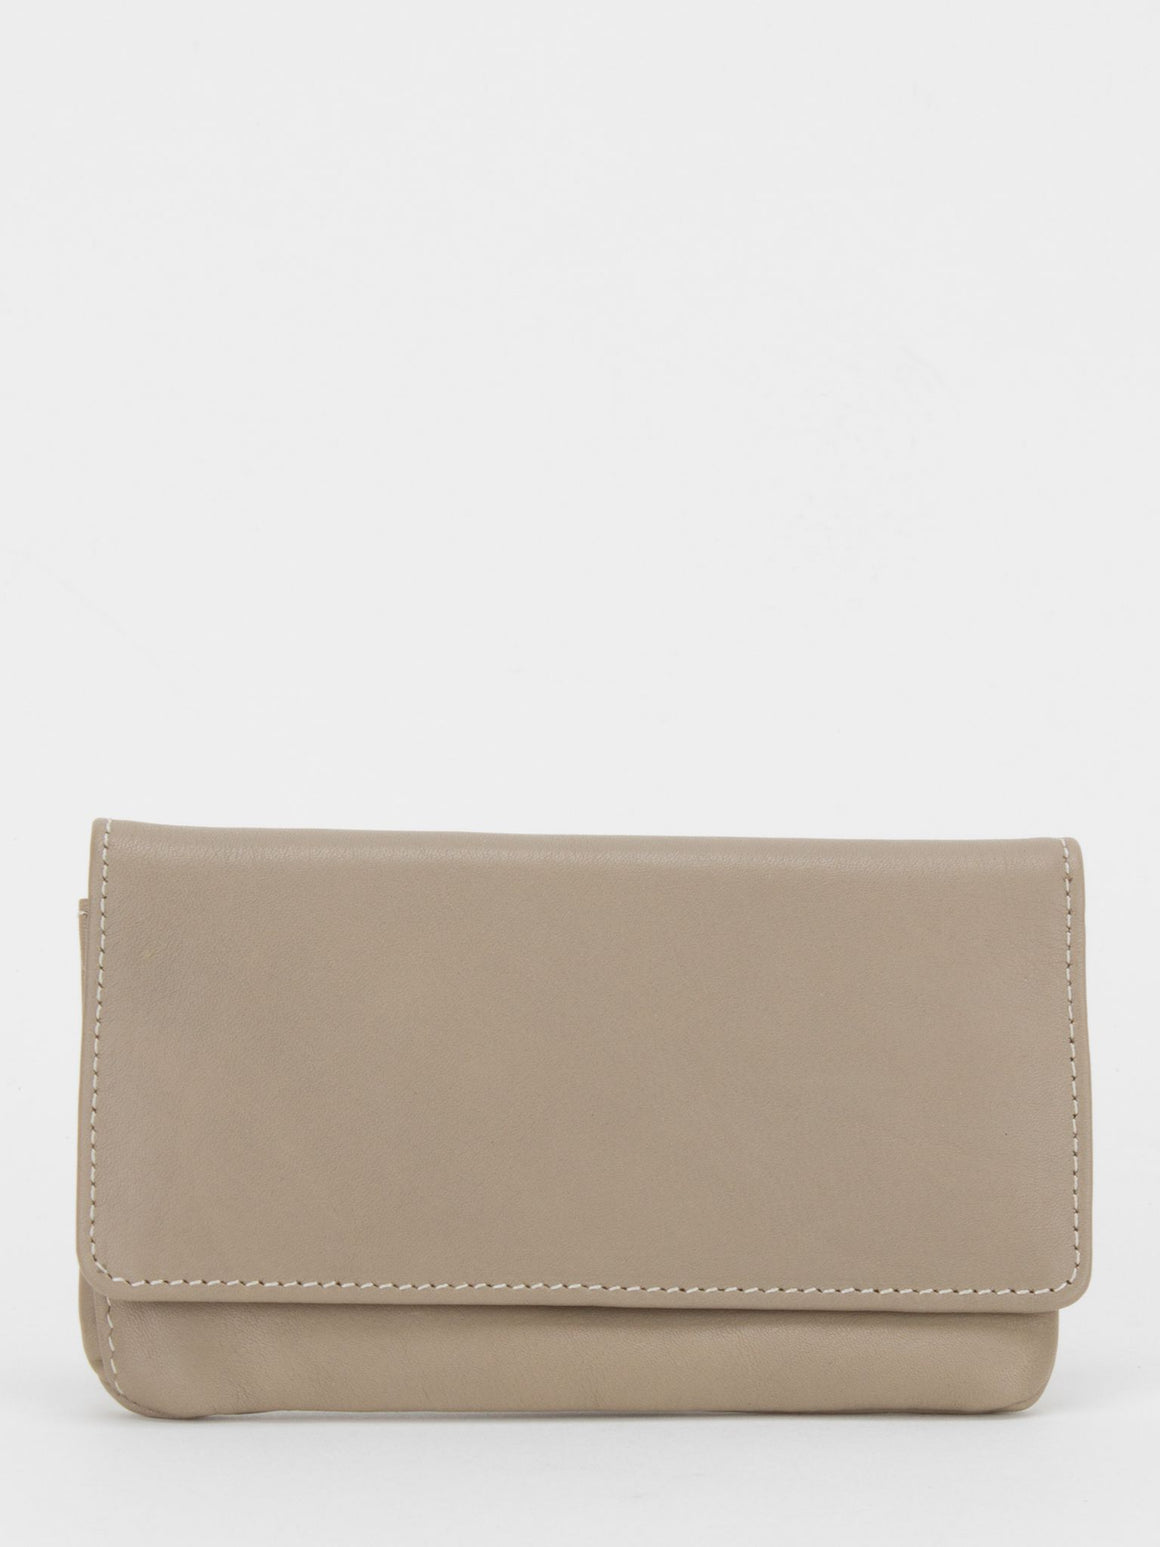 Orchid Leather Makeup Pouch - Taupe